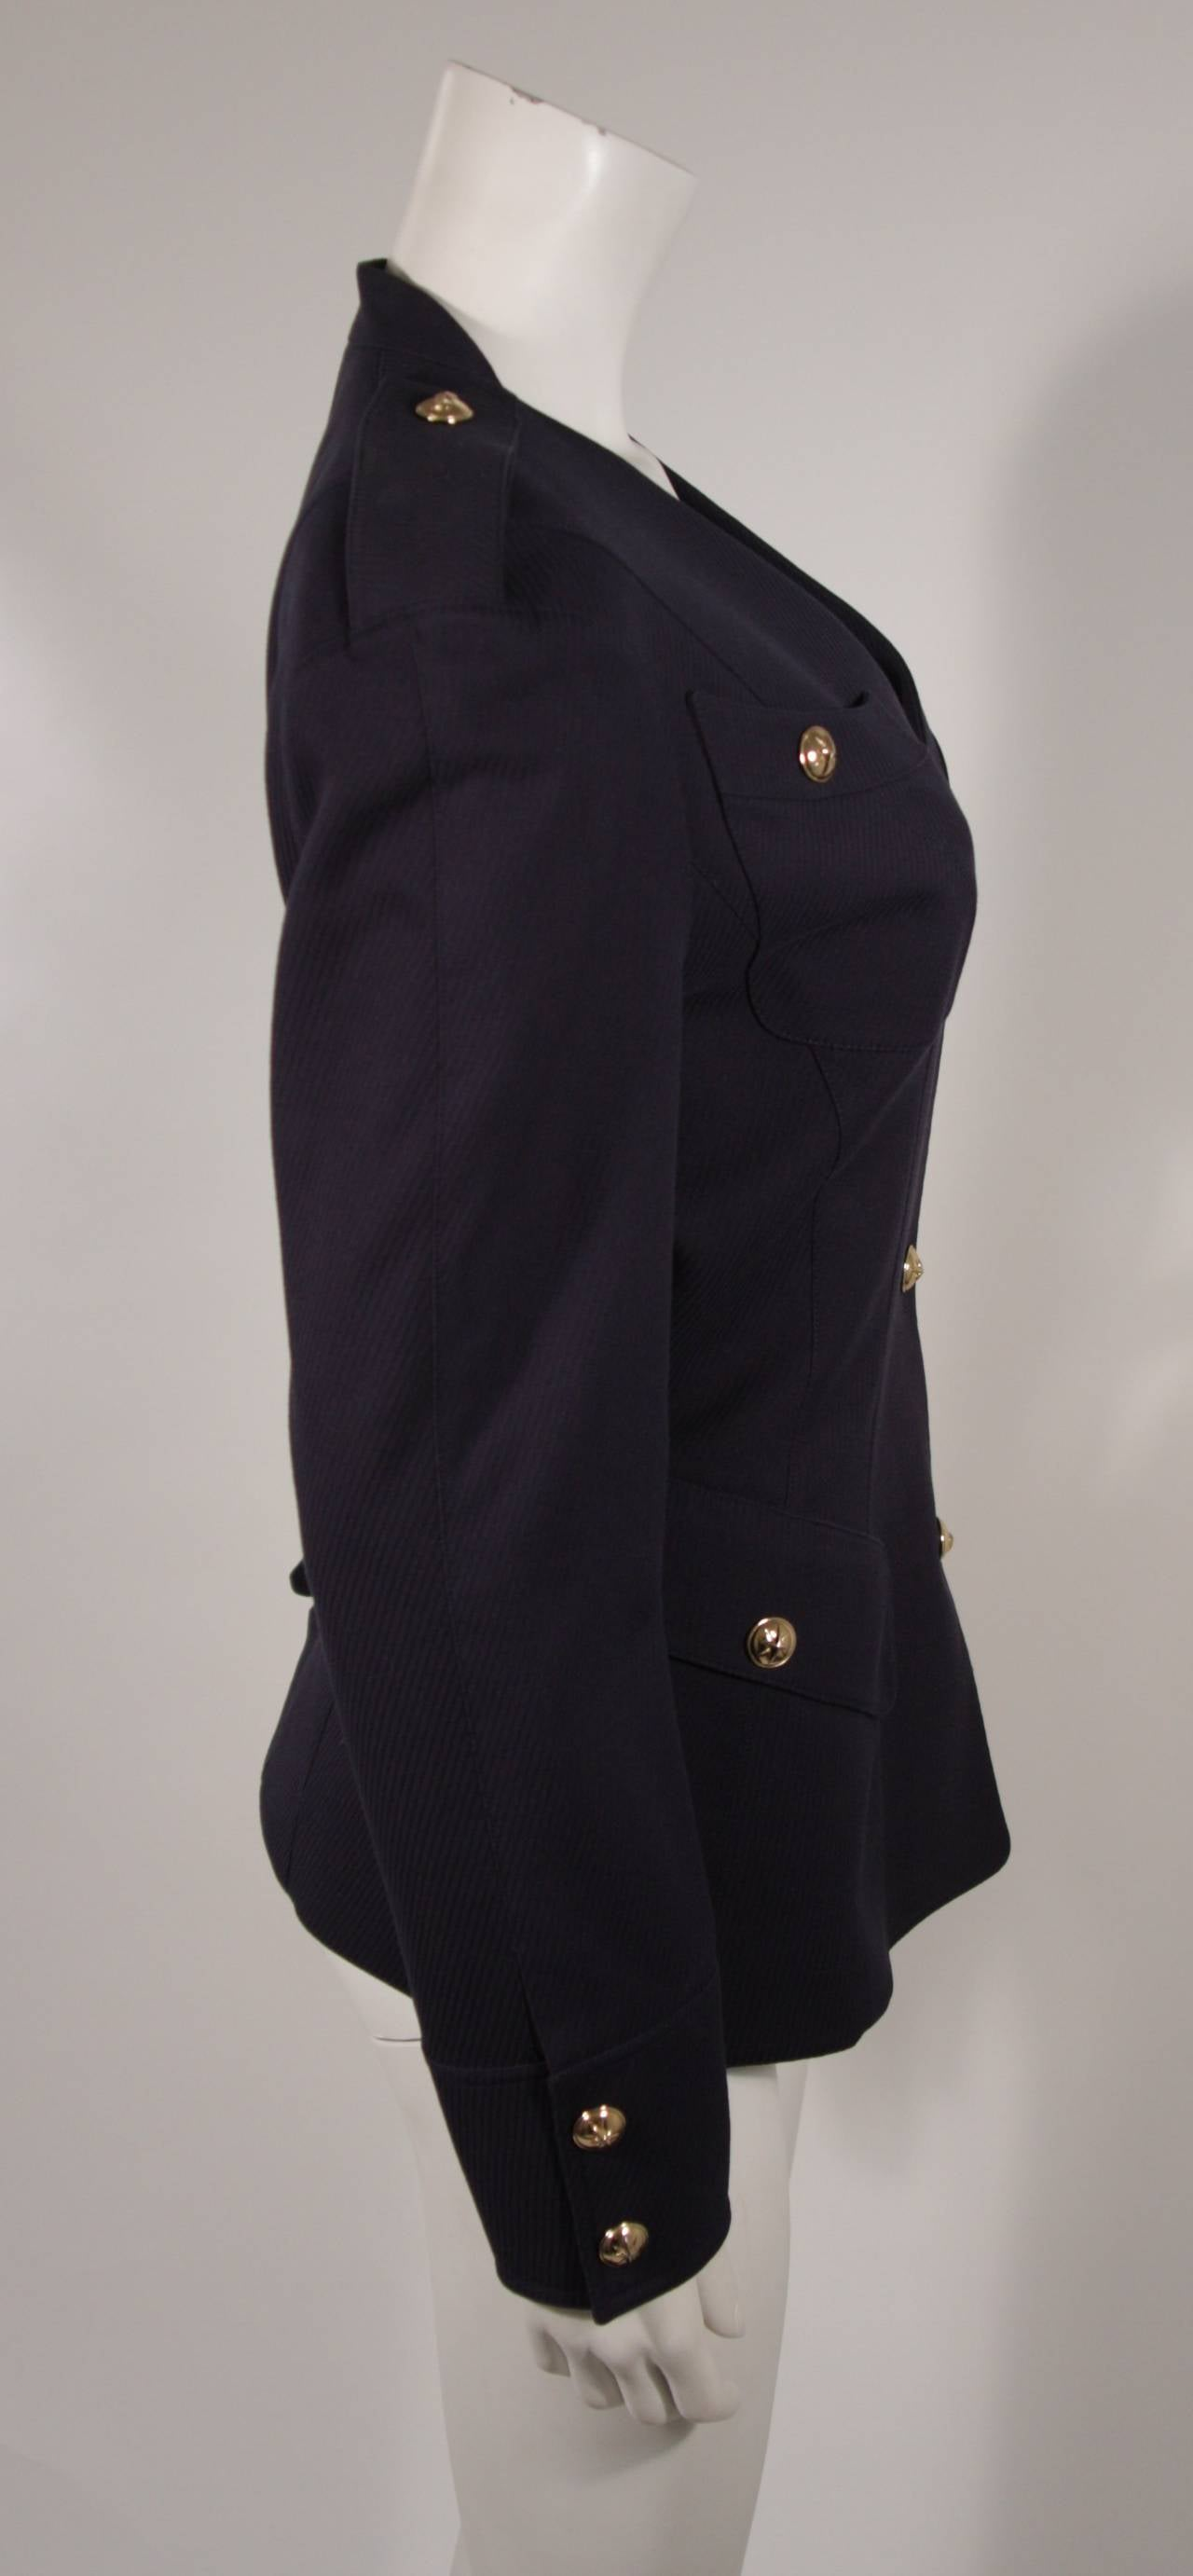 Theirry Mugler Navy Military Inspired Blazer with Gold Buttons Size 42 5